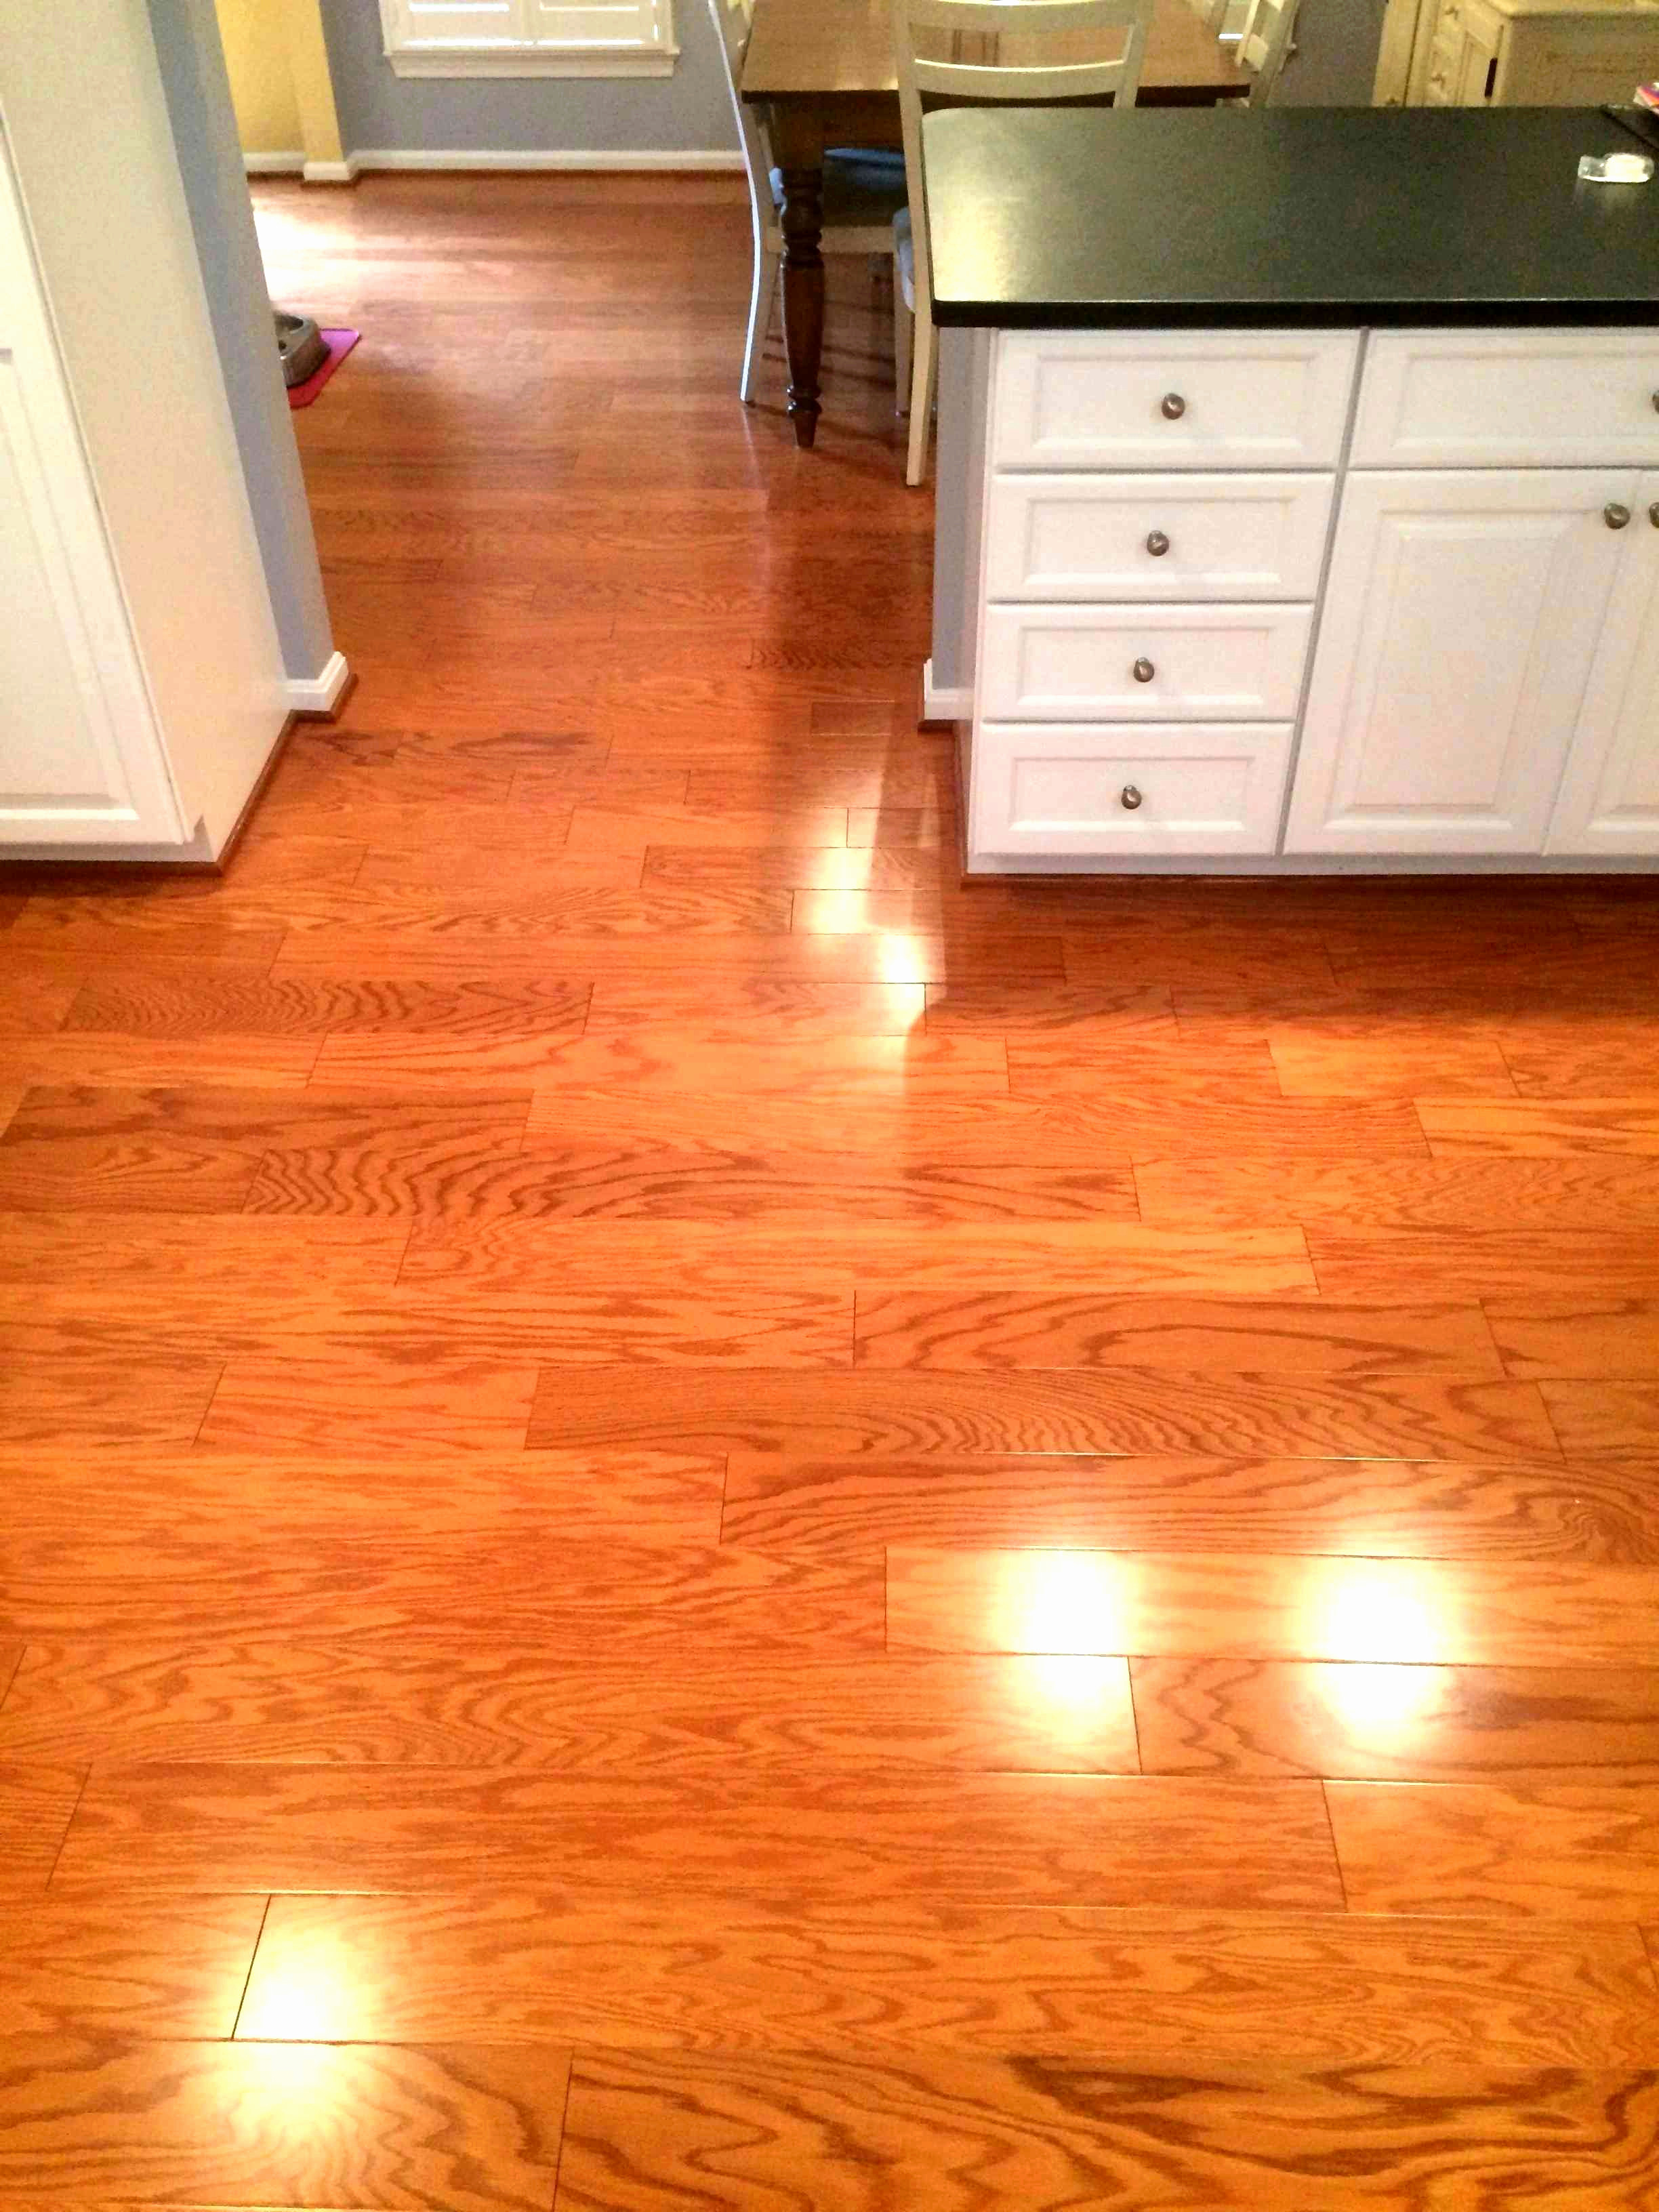 hardwood flooring care and maintenance of hardwood floor maintenance 15 wood floor hacks every homeowner needs inside hardwood floor maintenance 50 fresh what is the best cleaner for hardwood floors pics 50